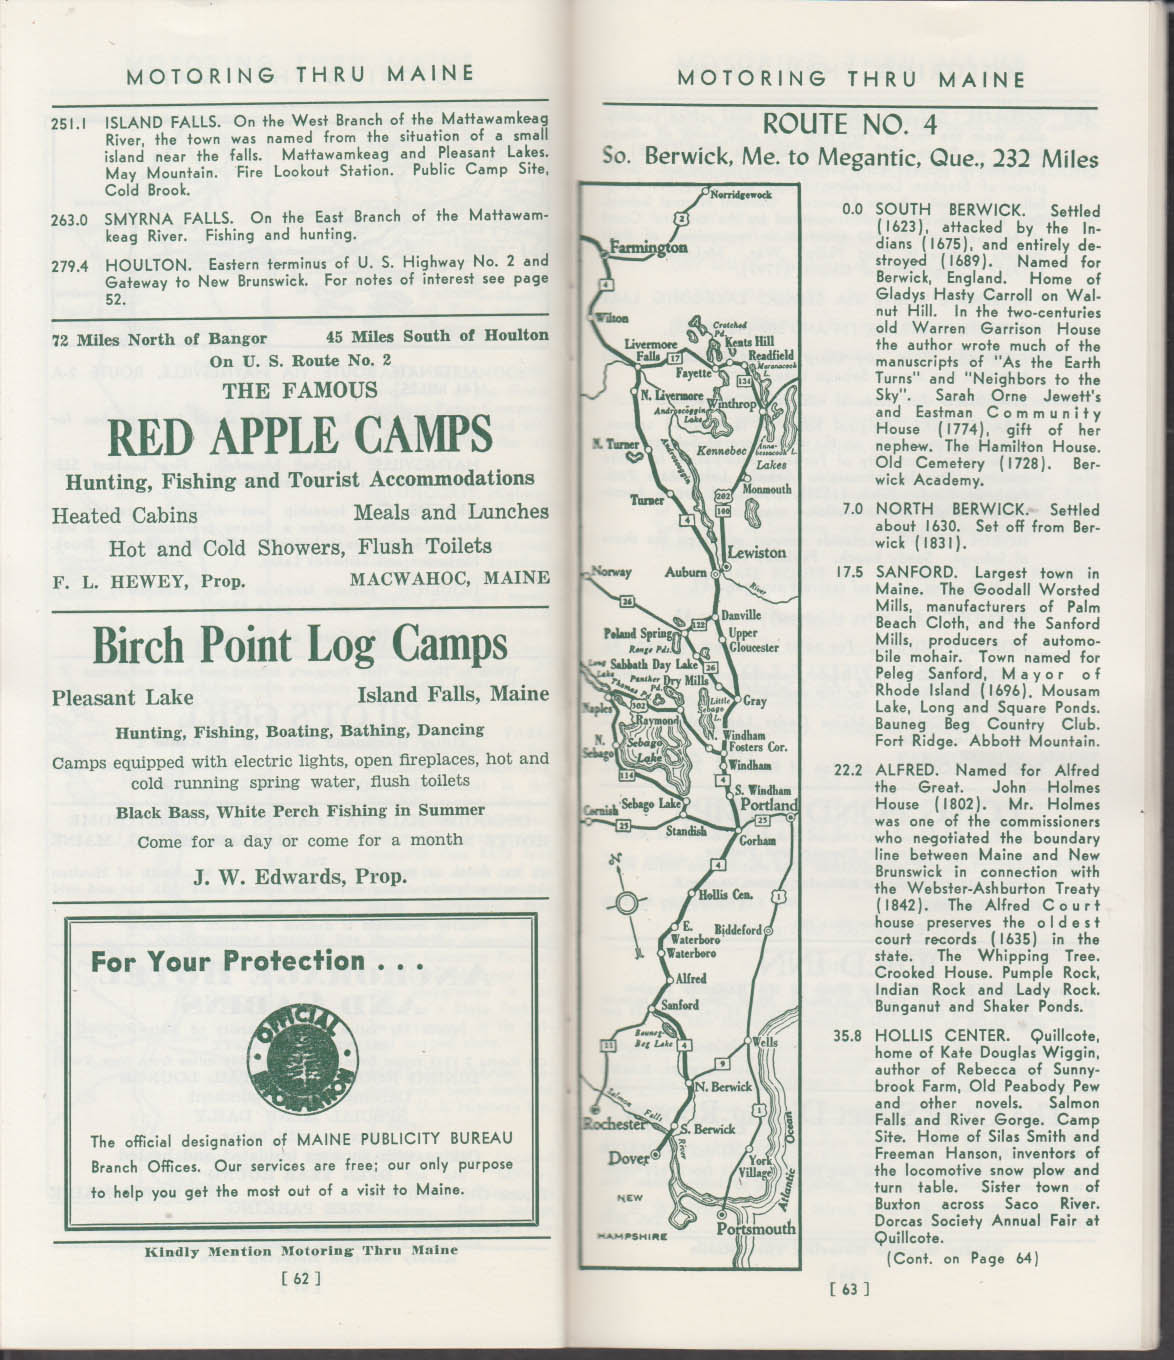 Motoring Thru Maine Guide 1949 strip maps local advertising inns hotels camps